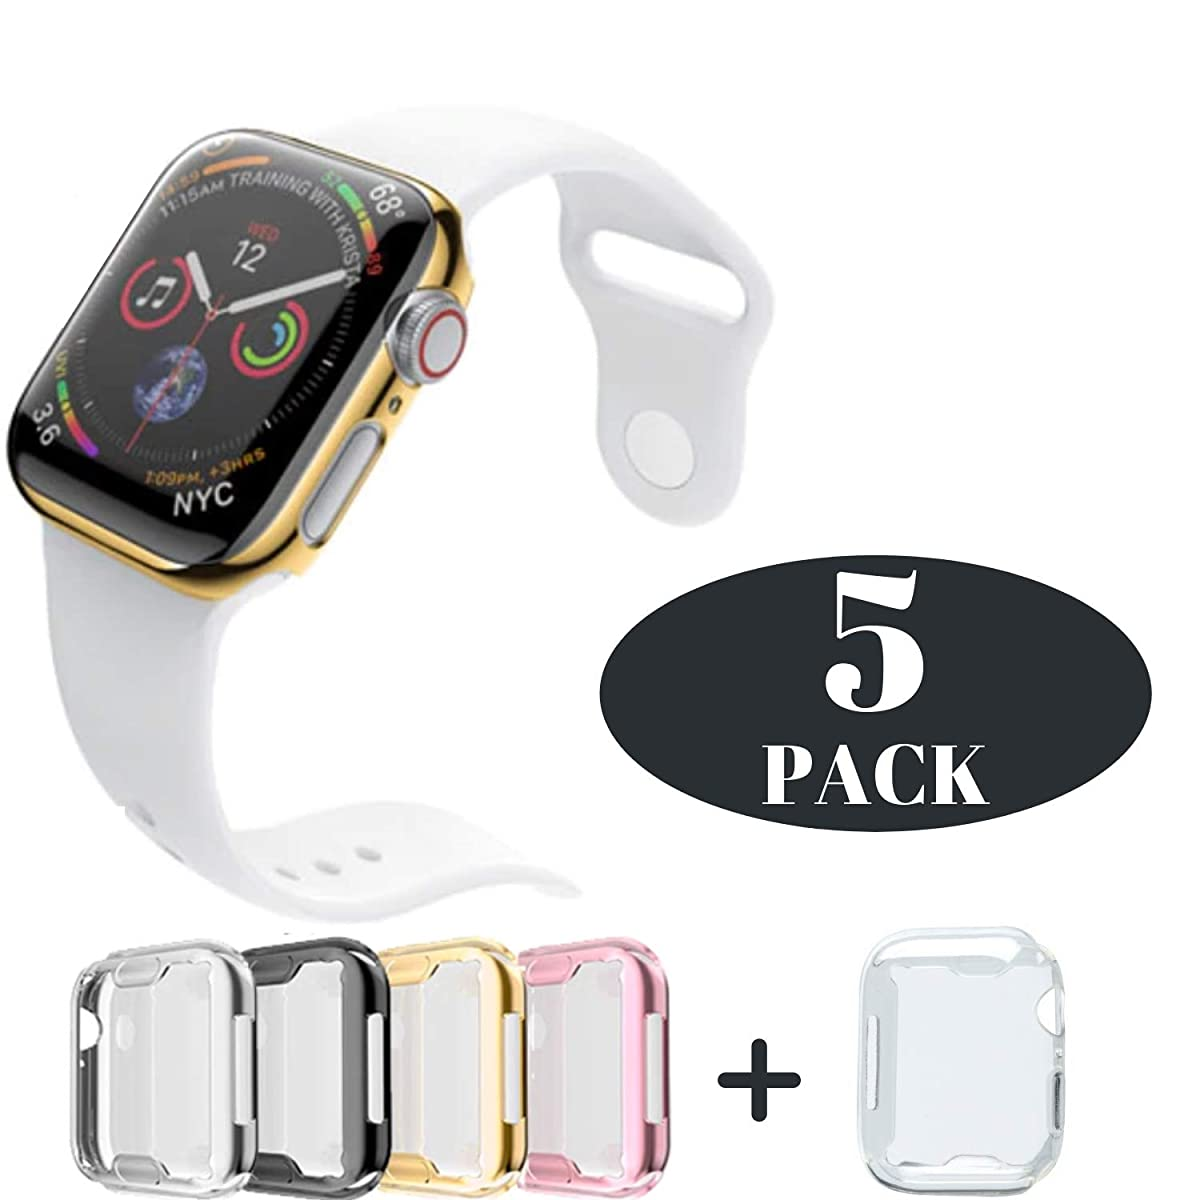 Case for Apple Watch 44m Series 4 Built-in Screen Protector All Protective Cover 5 Pack Black, Silver, Gold, Rose Gold HD Clear Ultra-Thin 44mm iWatch 4 TPU Cover iV Industry (5 Pack- 44mm)